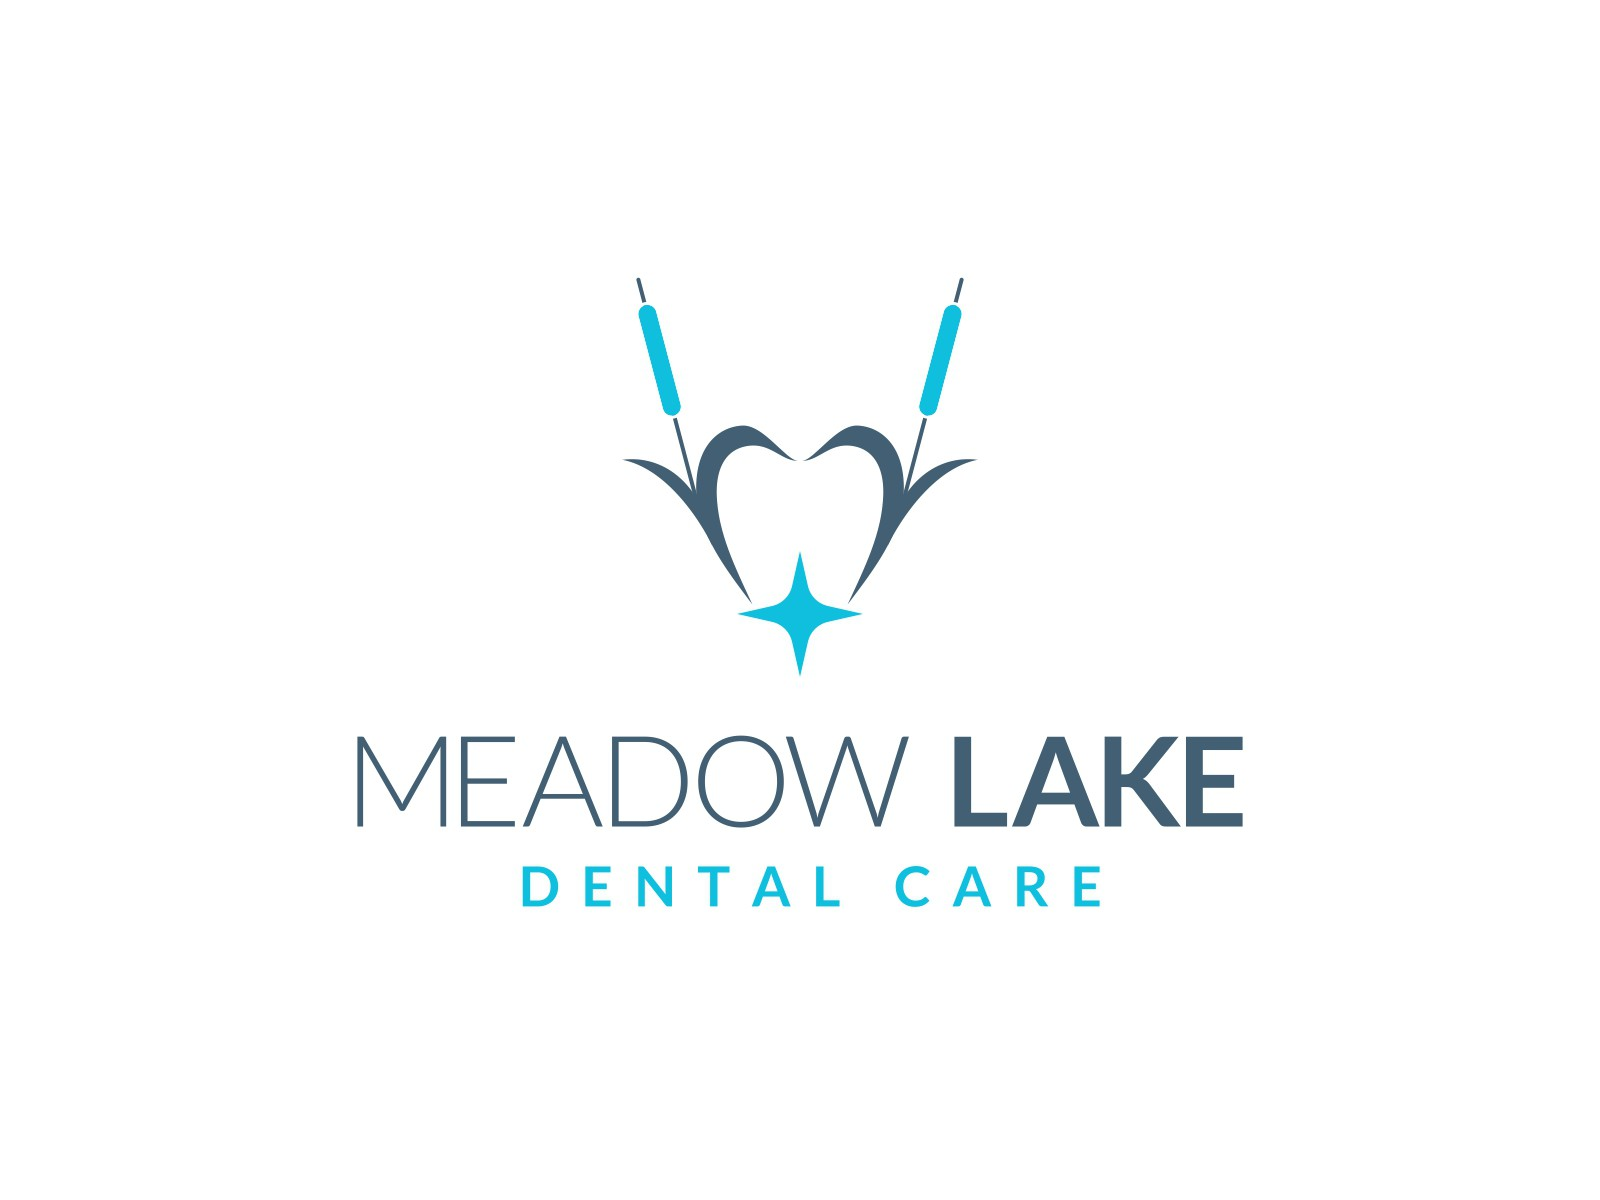 Meadow Lake Dental Care - A Dental Practice in the Chicago Suburbs